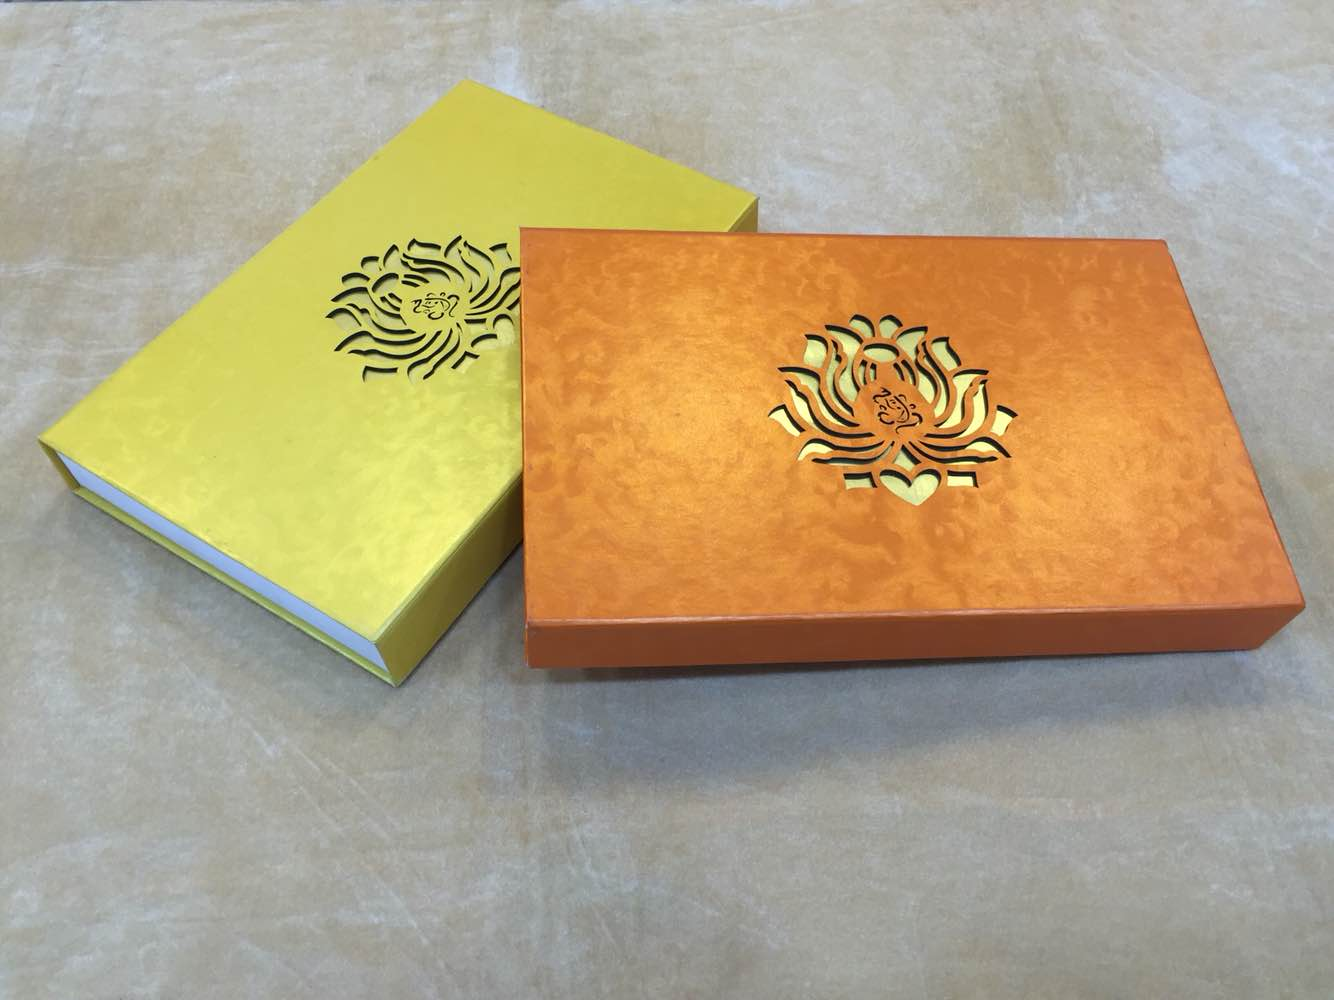 Laser Dry Fruit Box   We are leading manufacturer, supplier, wholesaler of Laser Dry Fruit Box